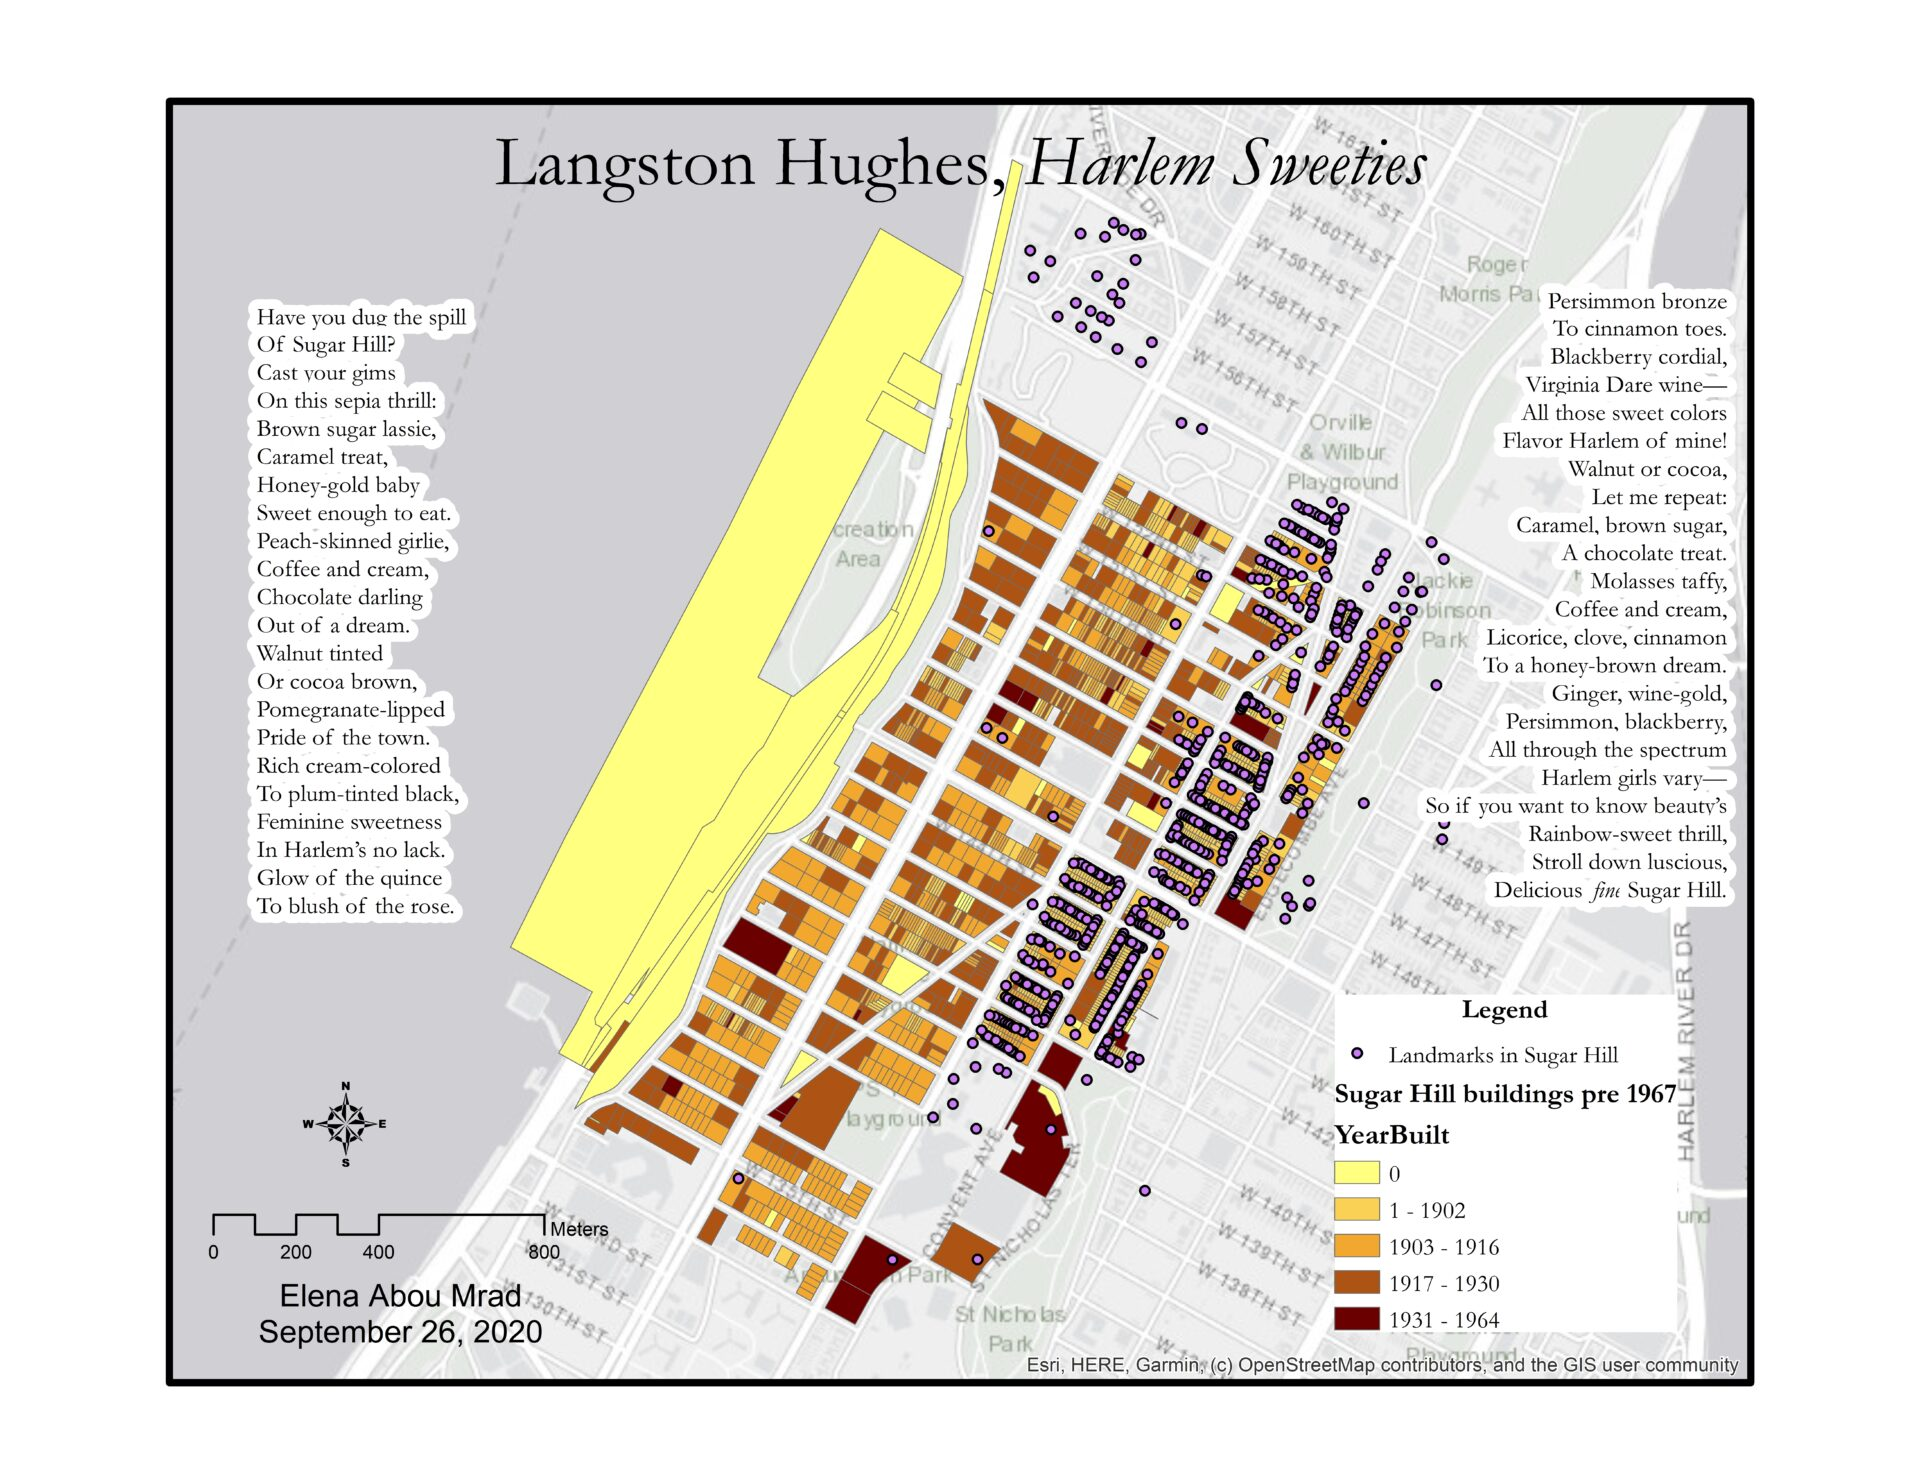 """Map of the Sugar Hill Neighborhood in Harlem. Buildings are colored according to the year they were built and there are indications of NYC landmarks. Langston Hughes' poem, """"Harlem Sweeties"""" is written on the right and left side of the map."""